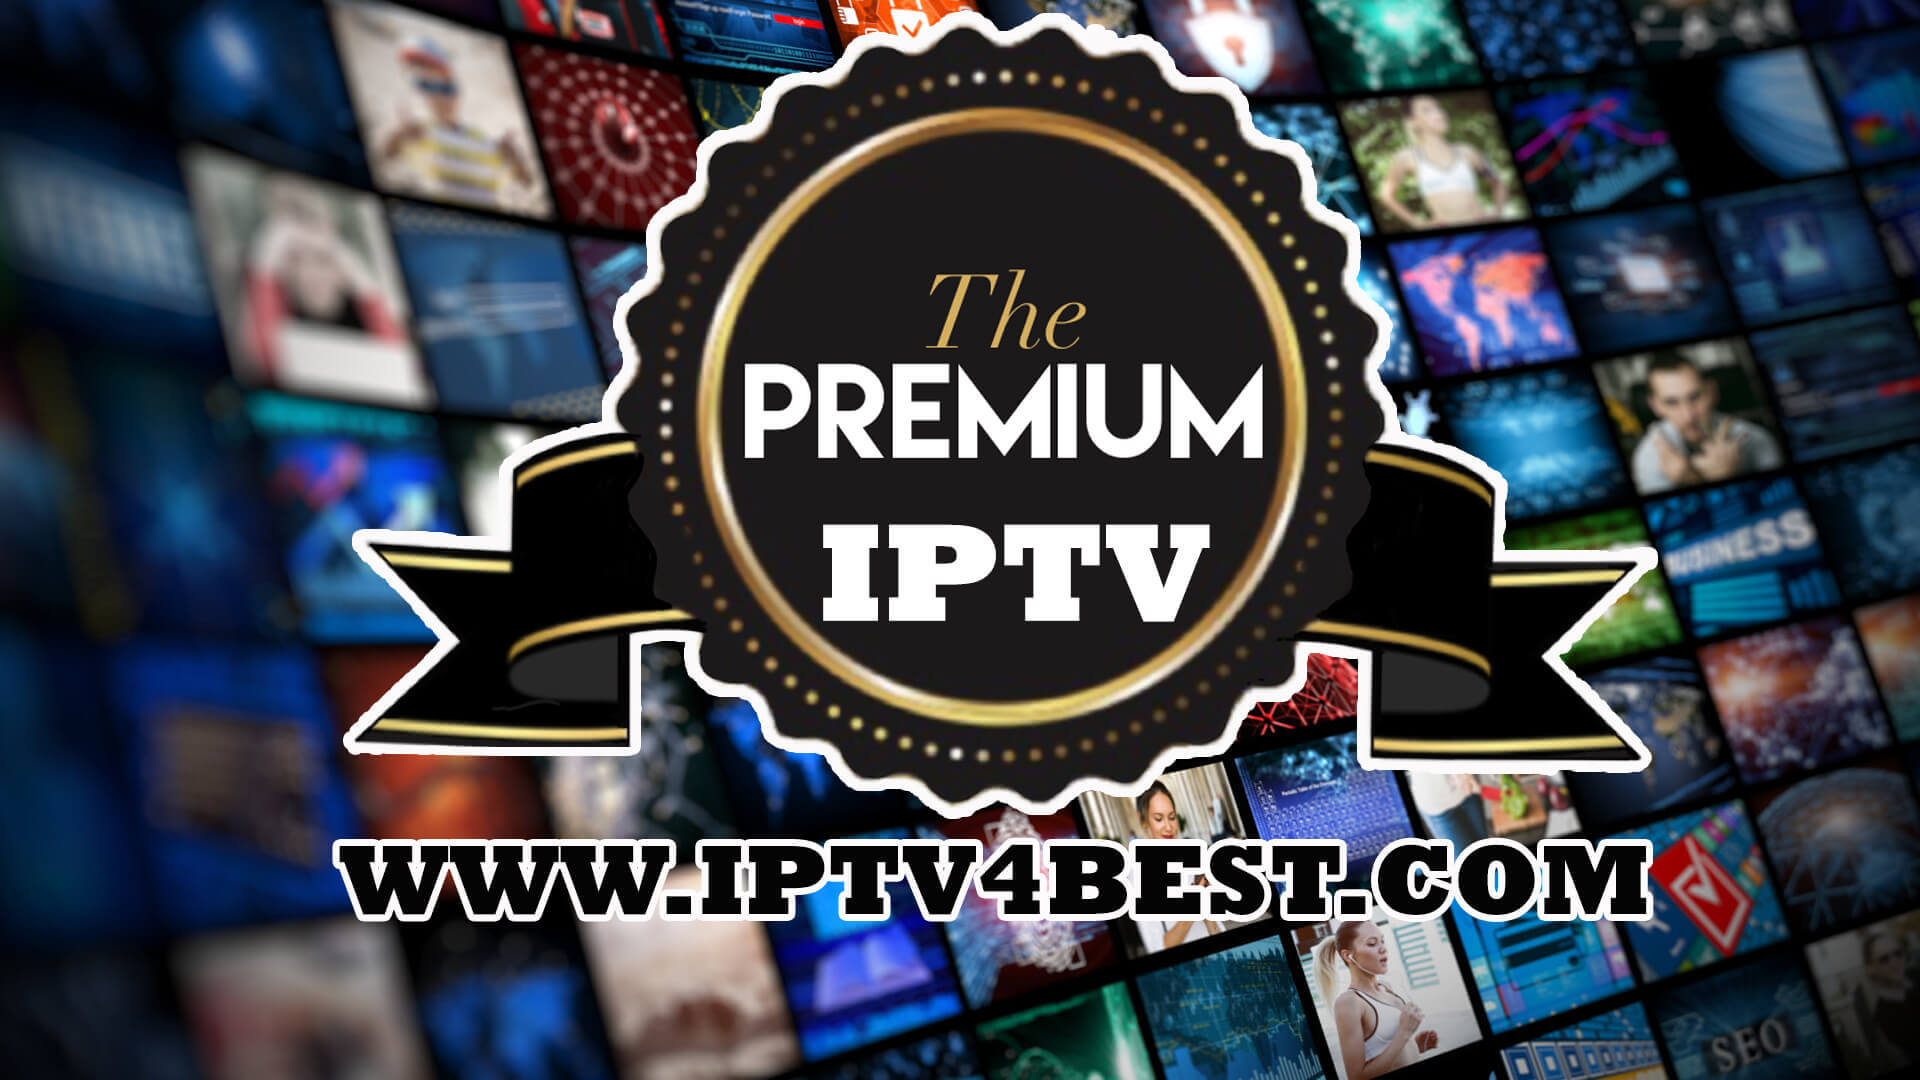 M3u Daily M3u Daily IPTv Free Server Playlist By IPTv4Best